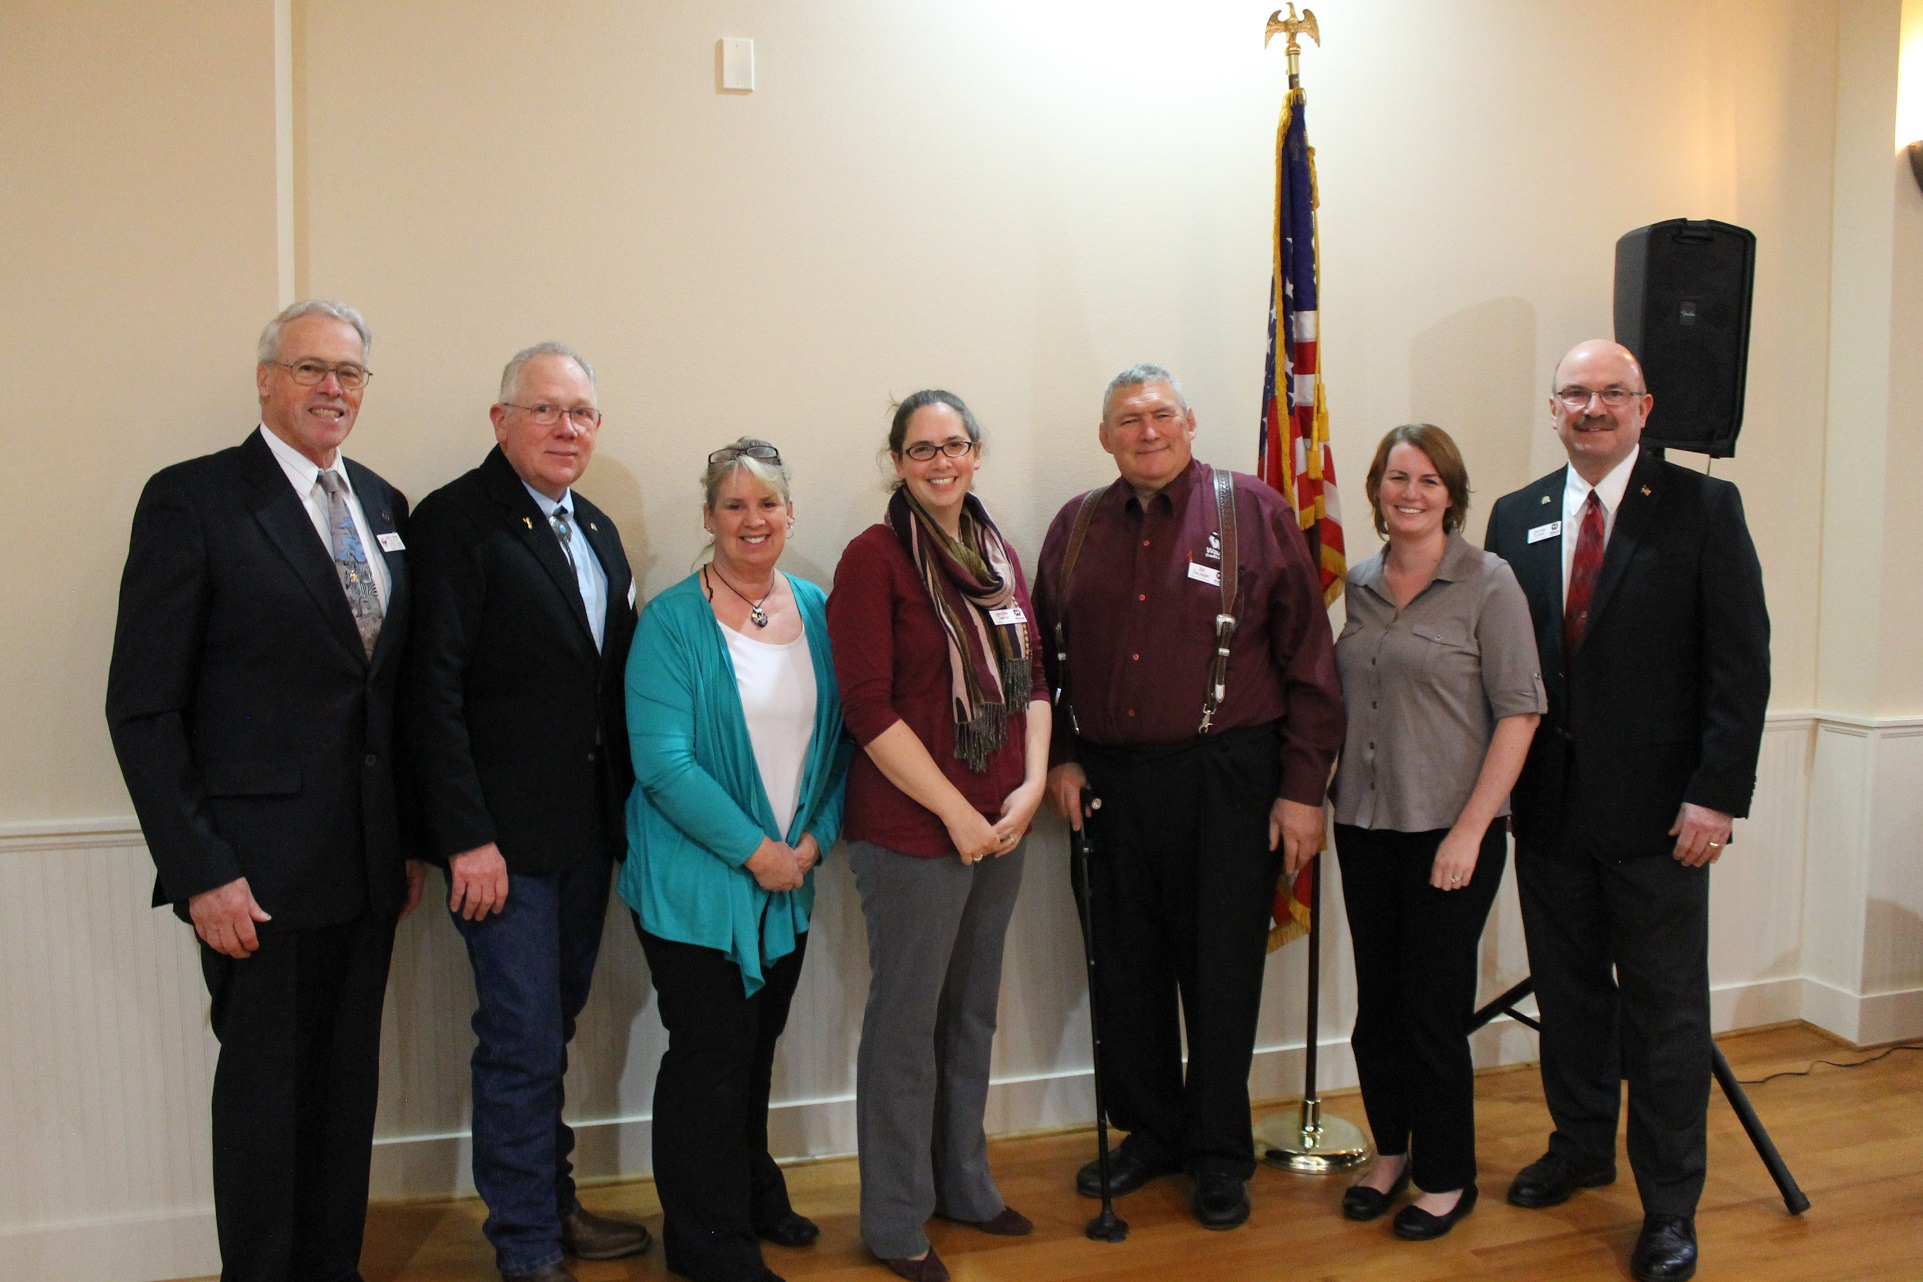 Wauna Credit Union's 2017 Board